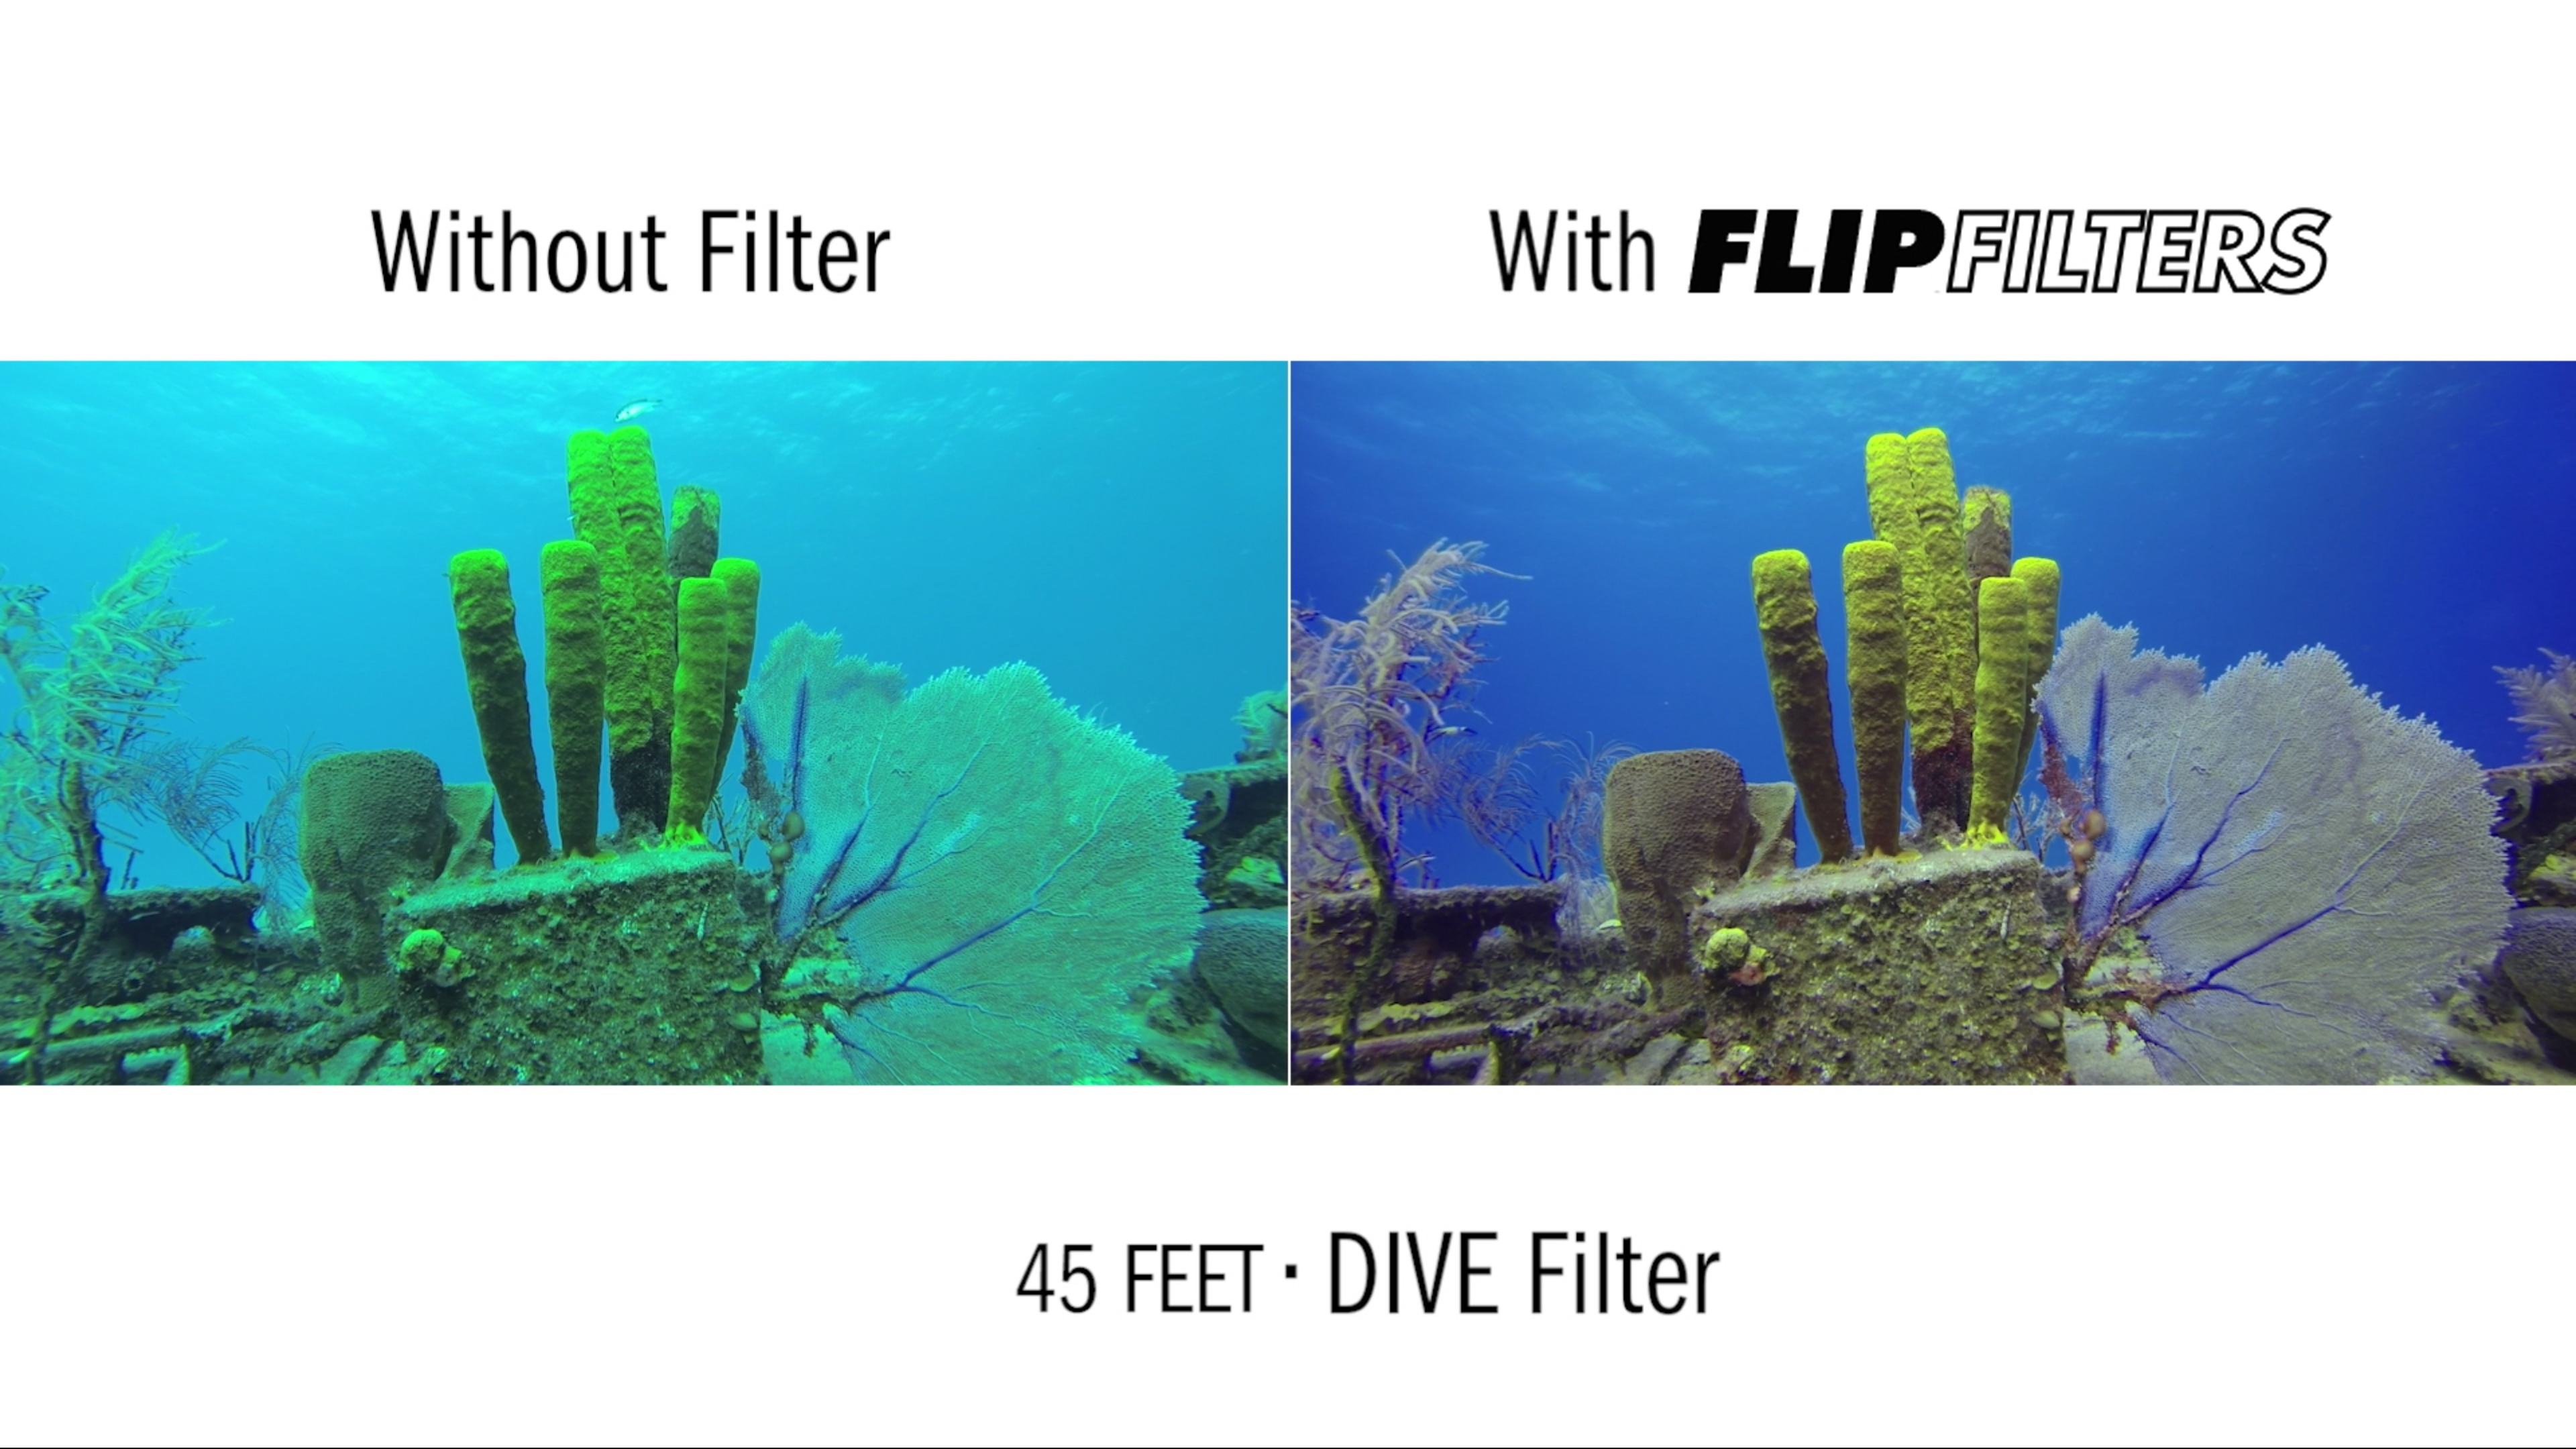 How To Filter Water Without A Filter Underwater Camera Articles Best Gopro Underwater Filter And Macro